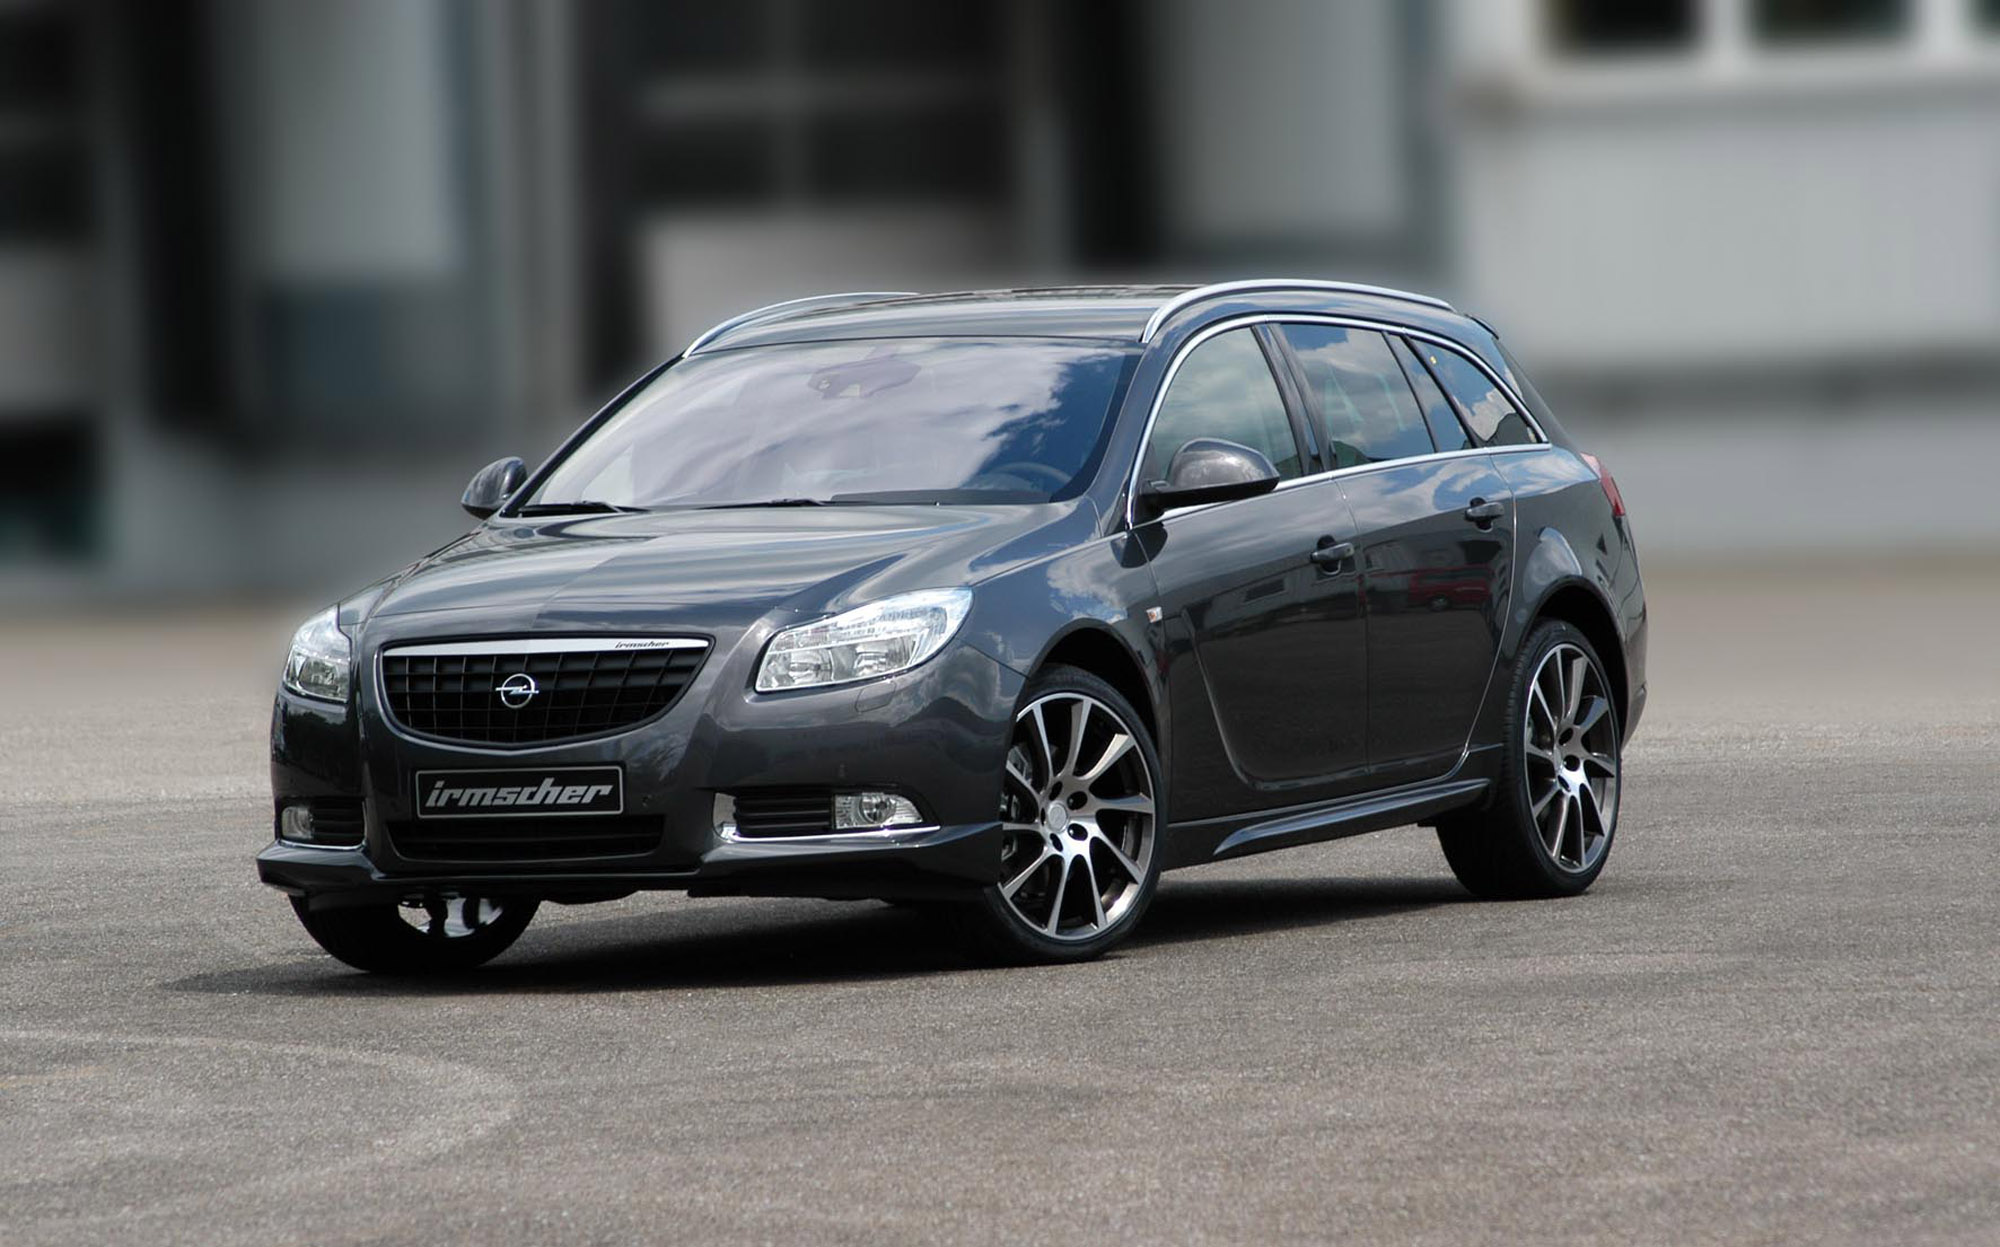 irmscher retrofits the opel insignia sports tourer. Black Bedroom Furniture Sets. Home Design Ideas